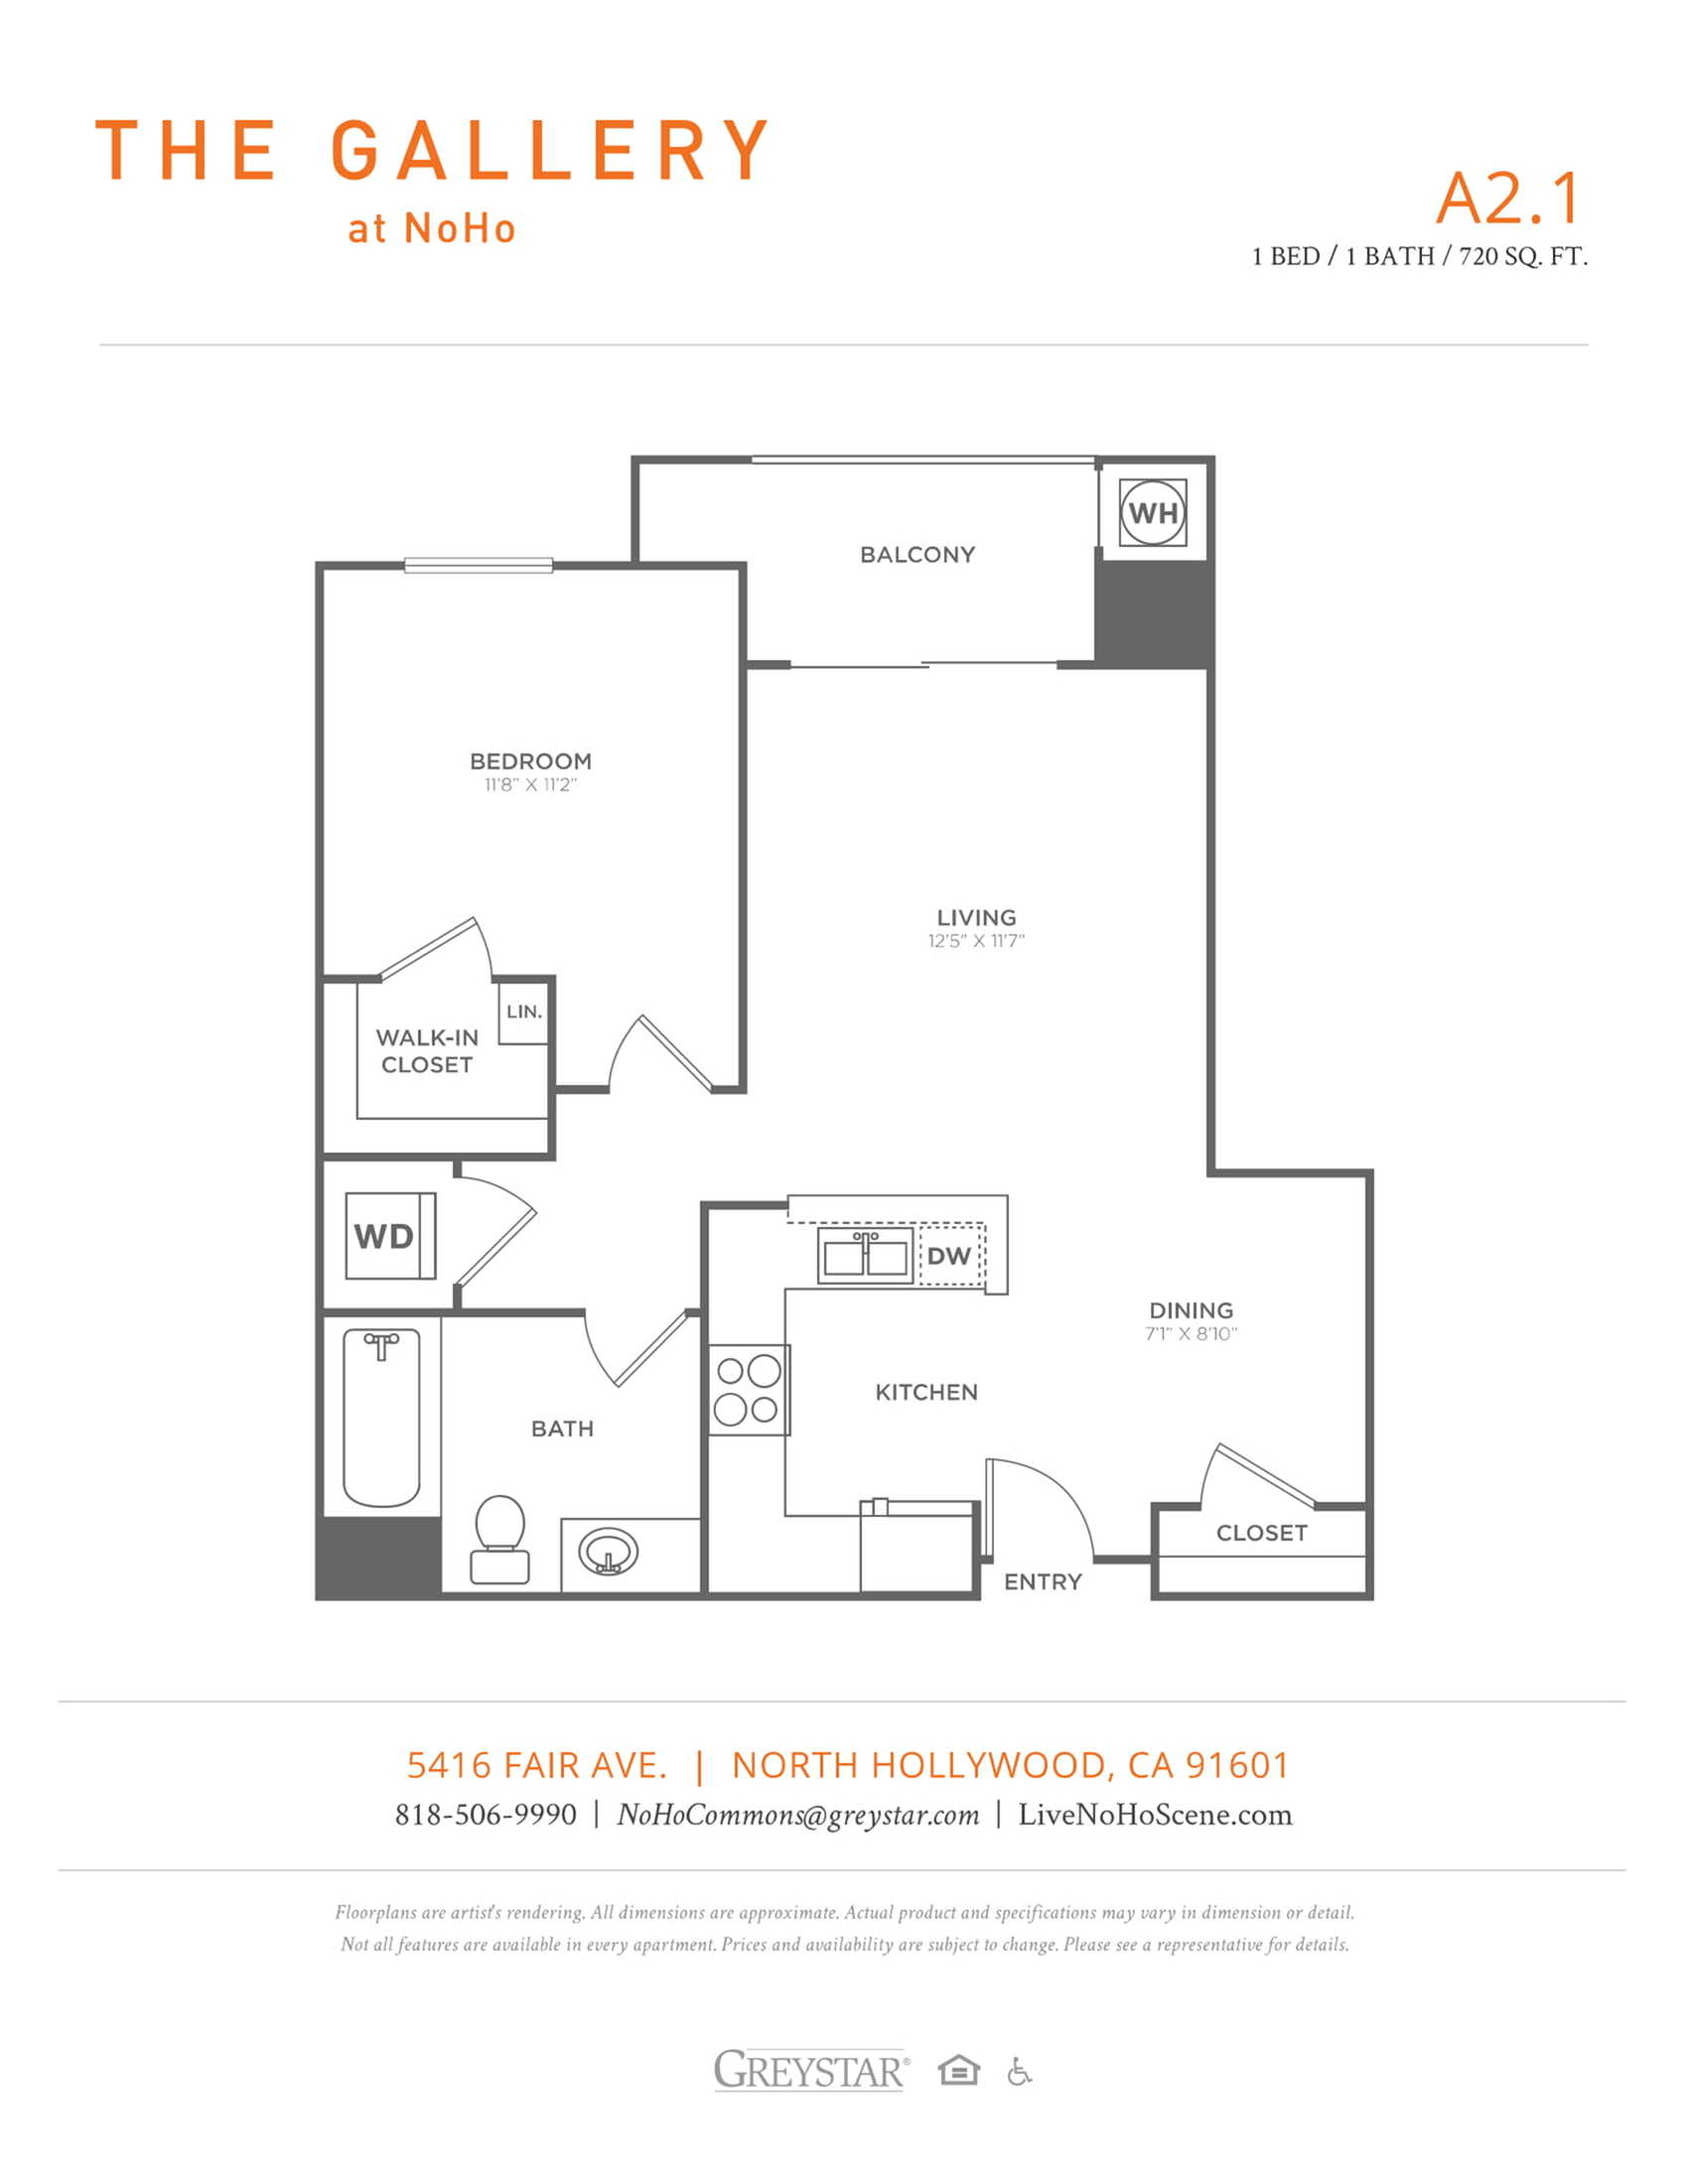 A2.1 | 1 bed 1 bath | from 720 square feet